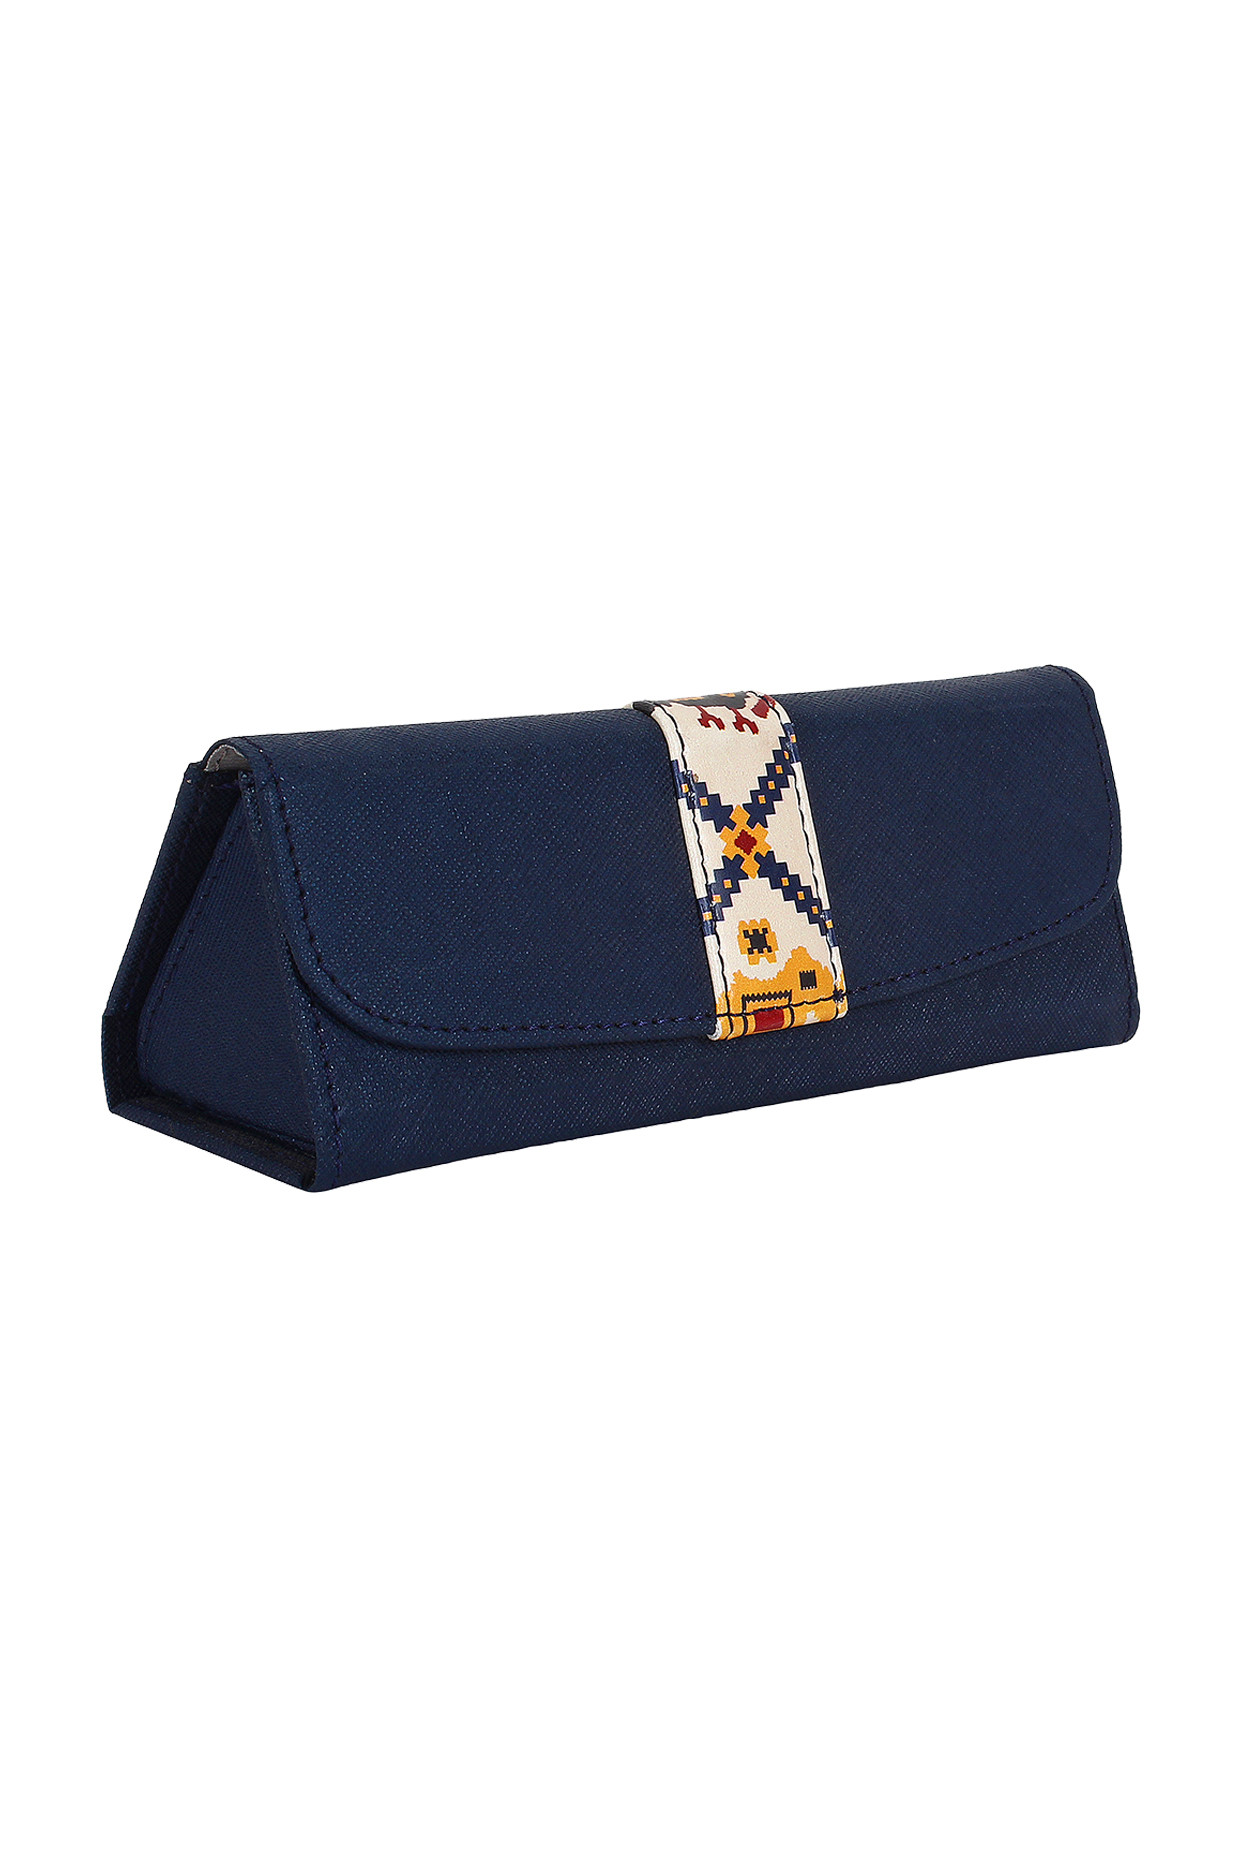 Blue Printed Spectacle Case by Imars